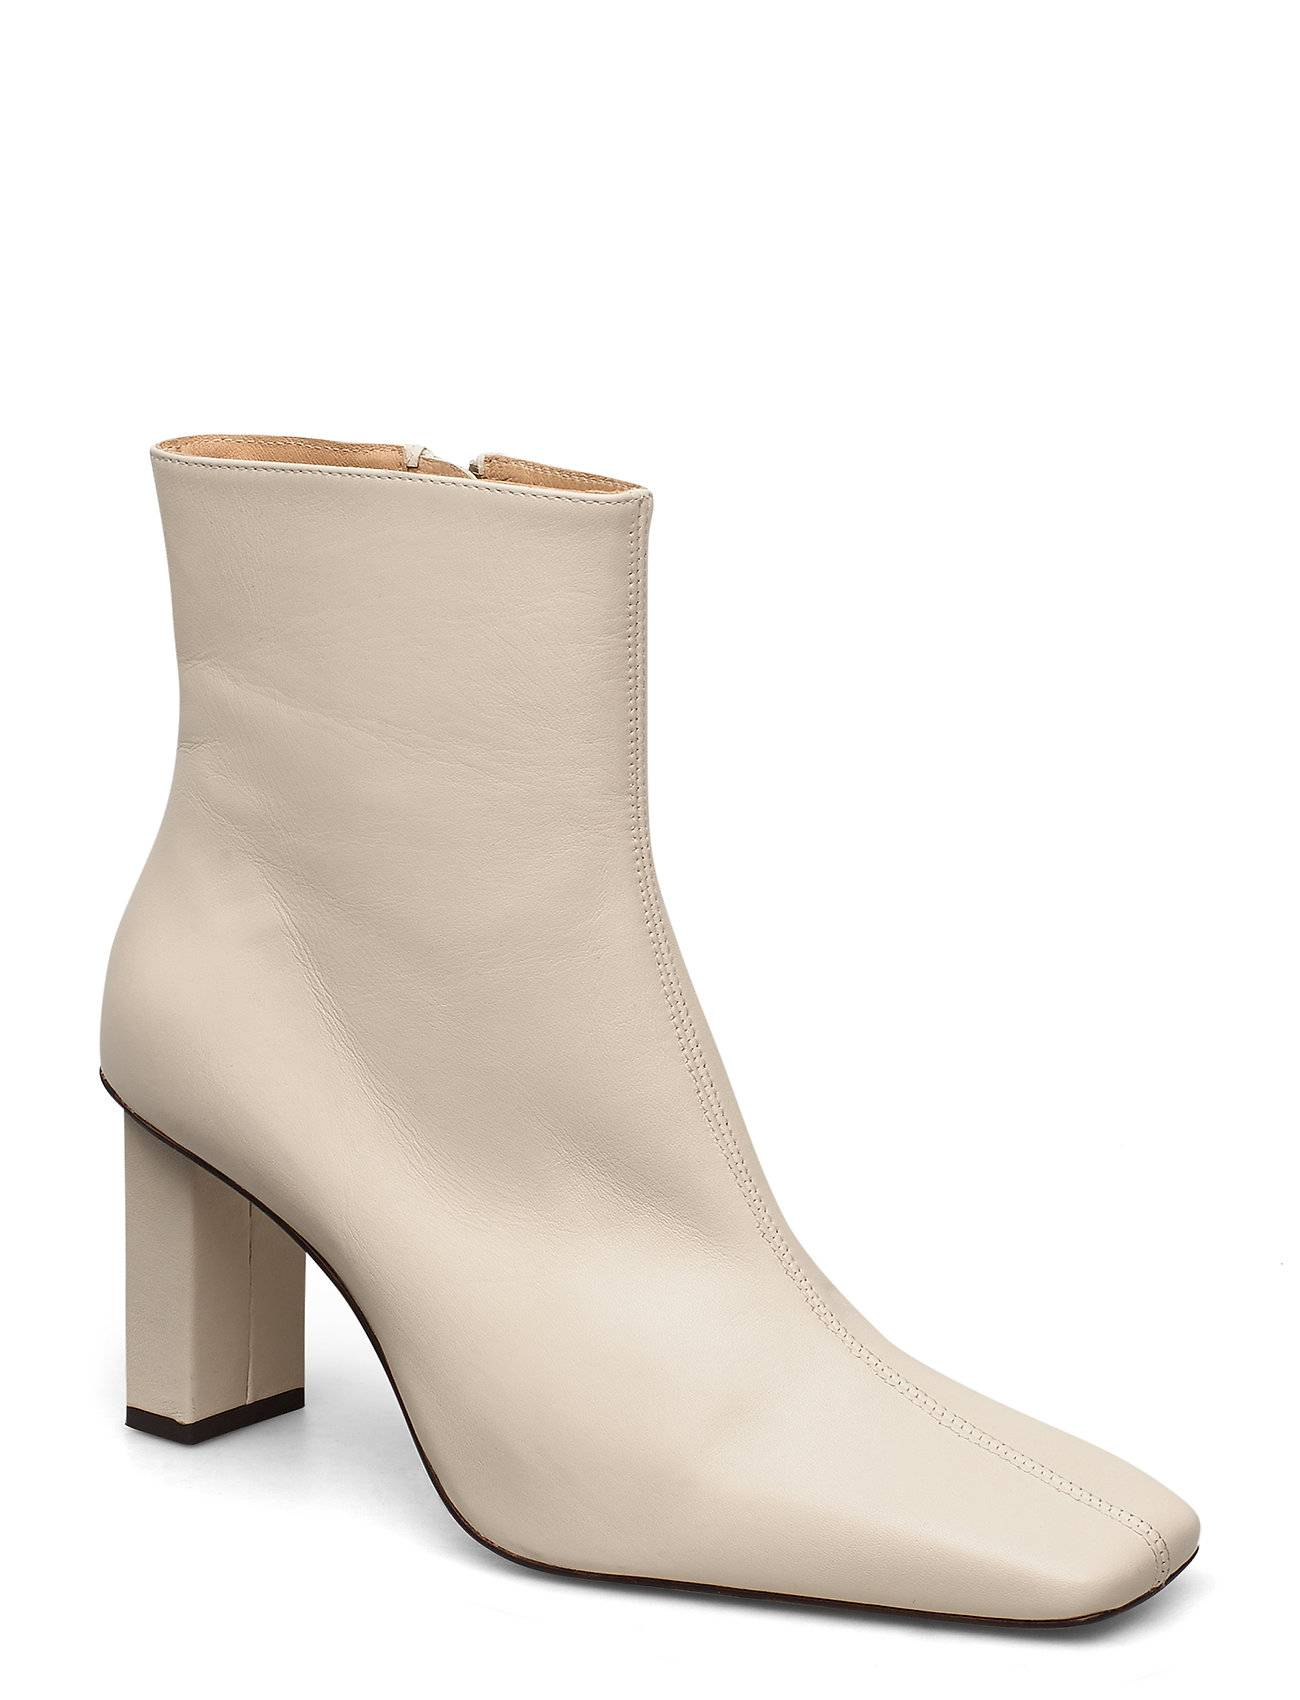 ANNY NORD Joan Le CarrÉ Ankle Boot Shoes Boots Ankle Boots Ankle Boot - Heel Kermanvärinen ANNY NORD